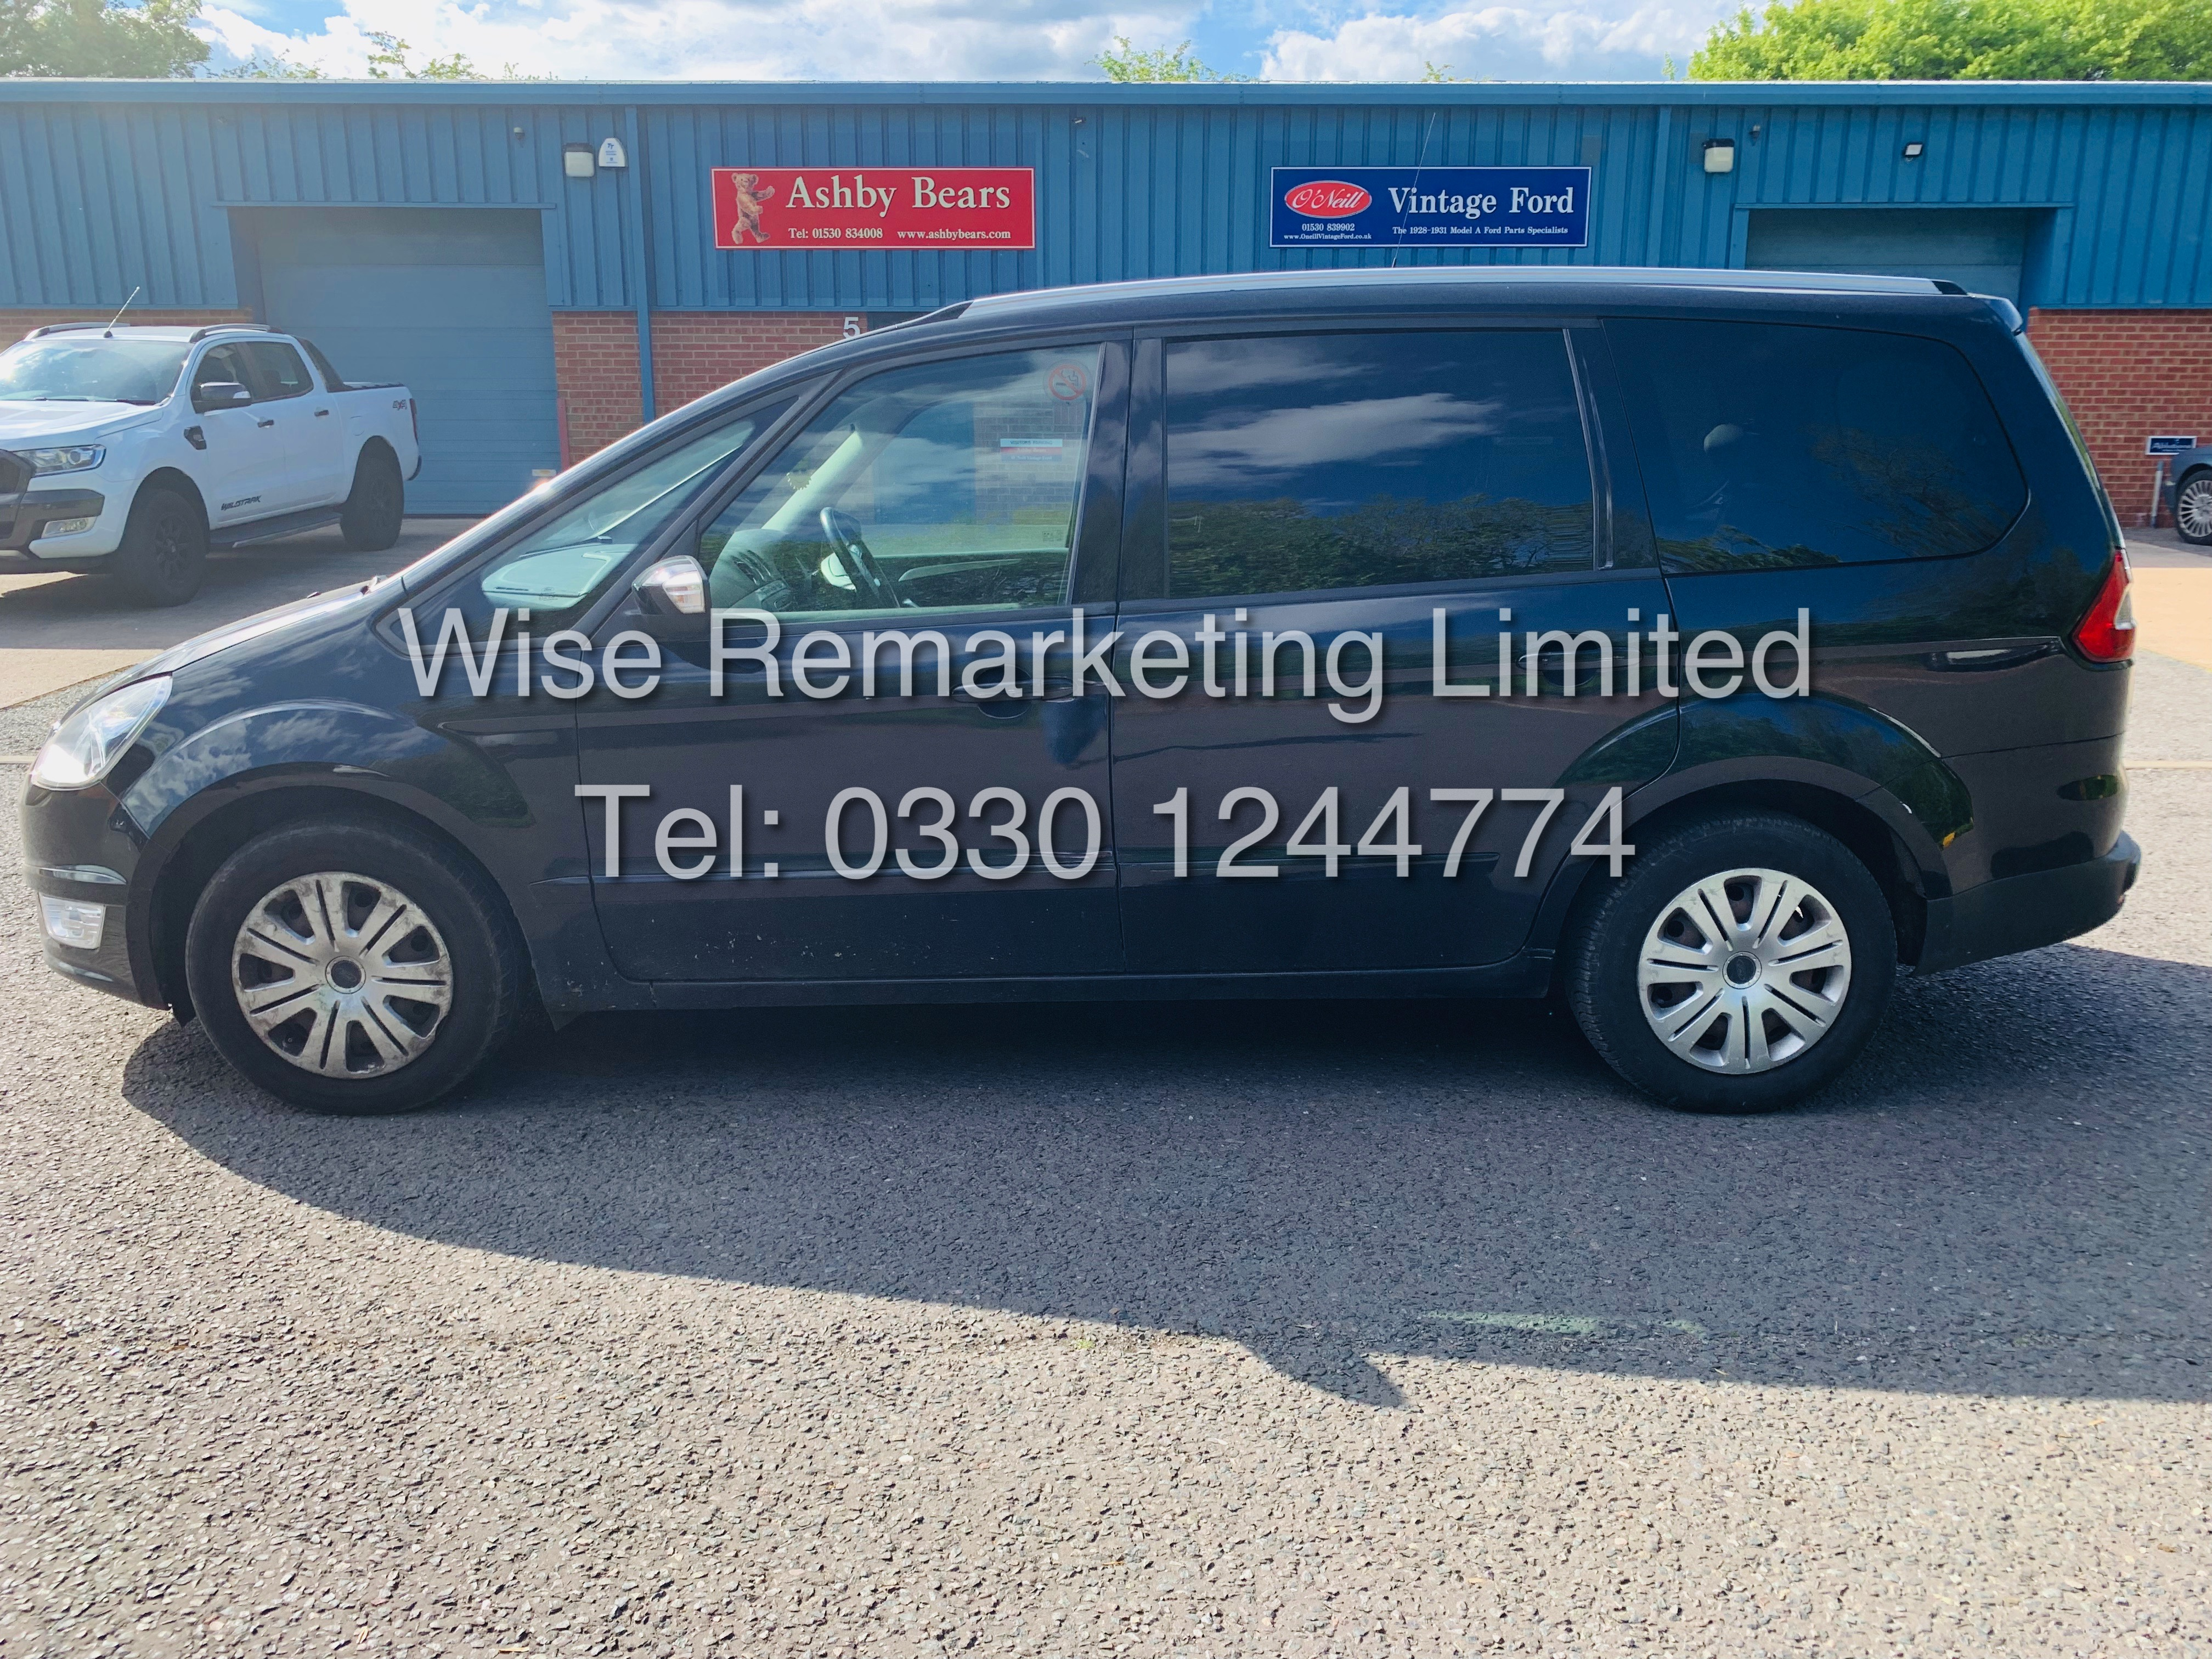 FORD GALAXY ZETEC 2.0L TDCI AUTO 7 SEATER MPV 63 REG *1 OWNER* - Image 2 of 18